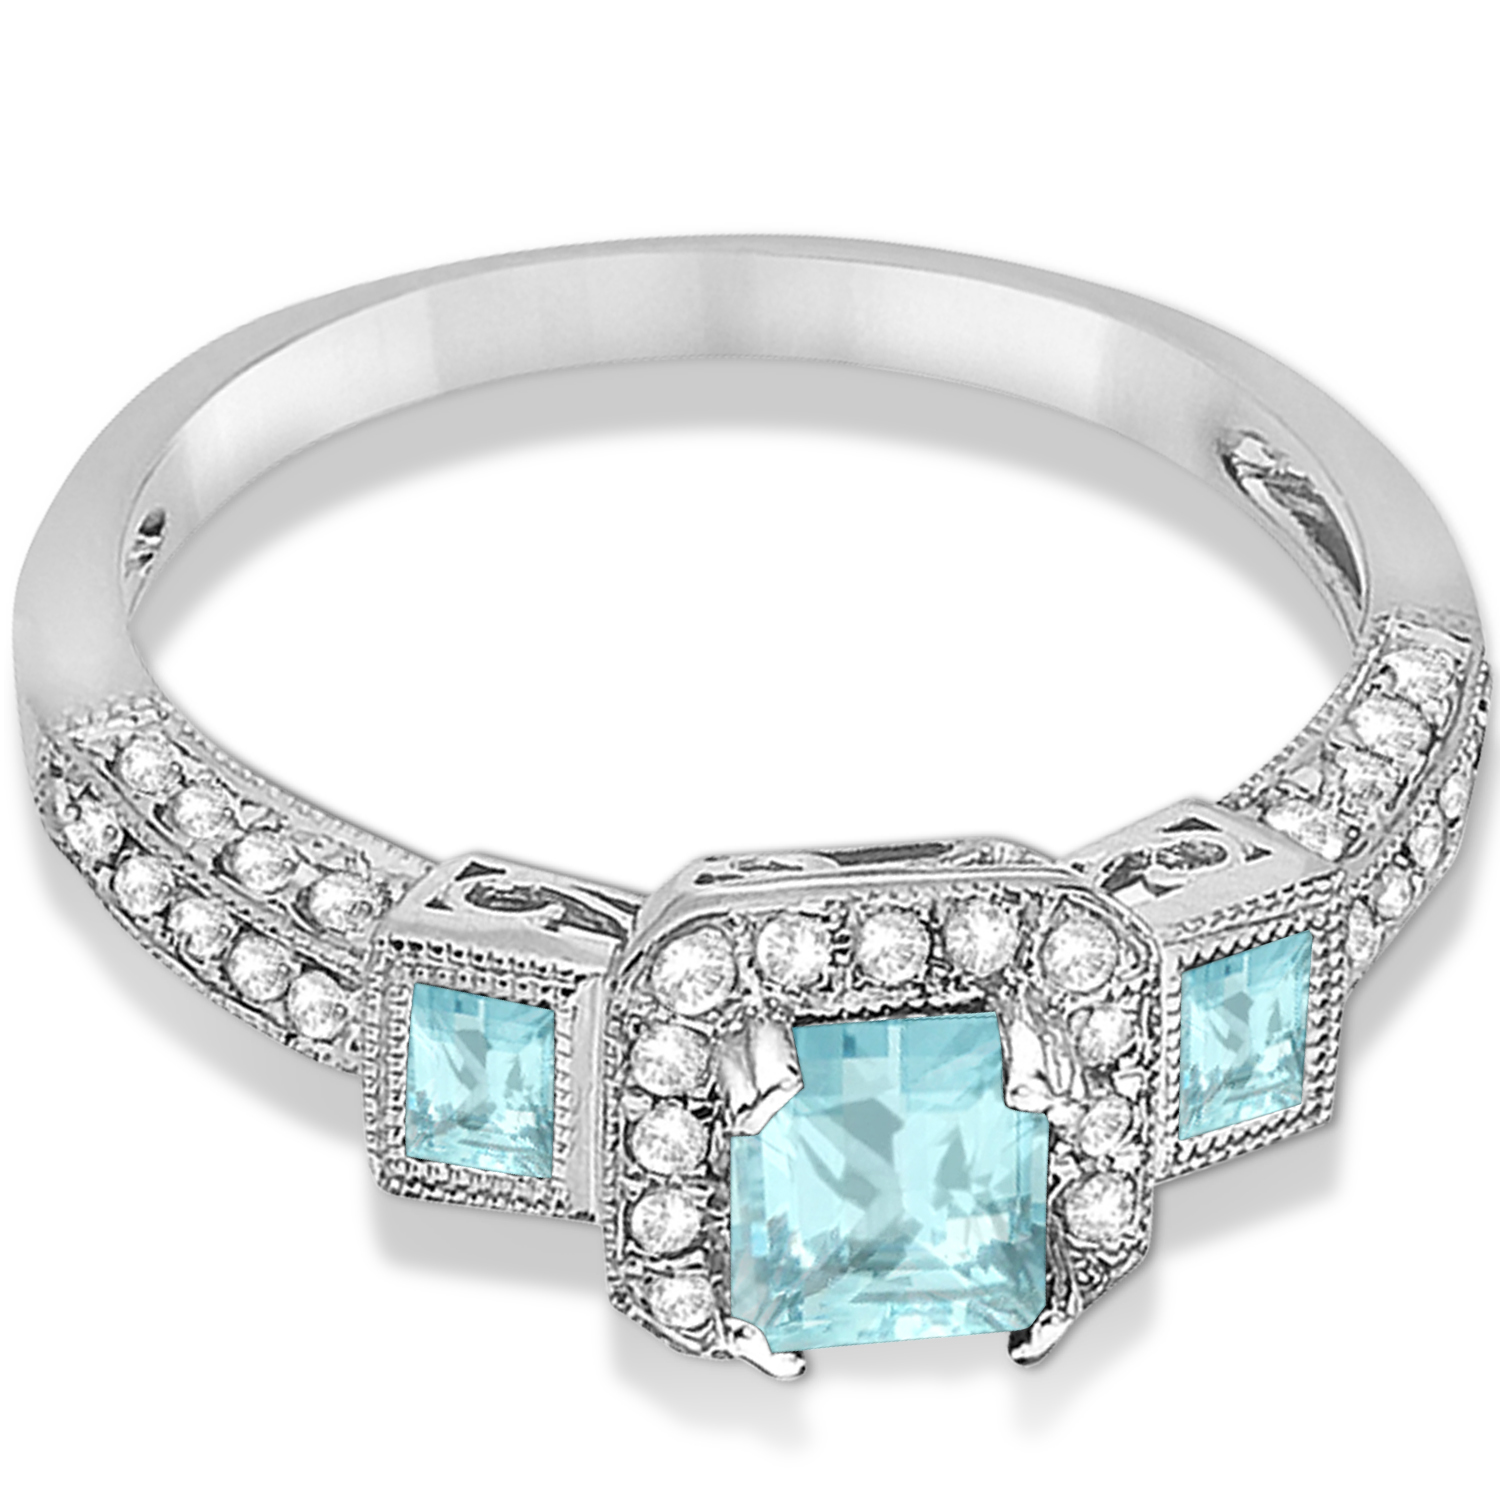 Aquamarine & Diamond Engagement Ring in 14k White Gold (1.35ctw)